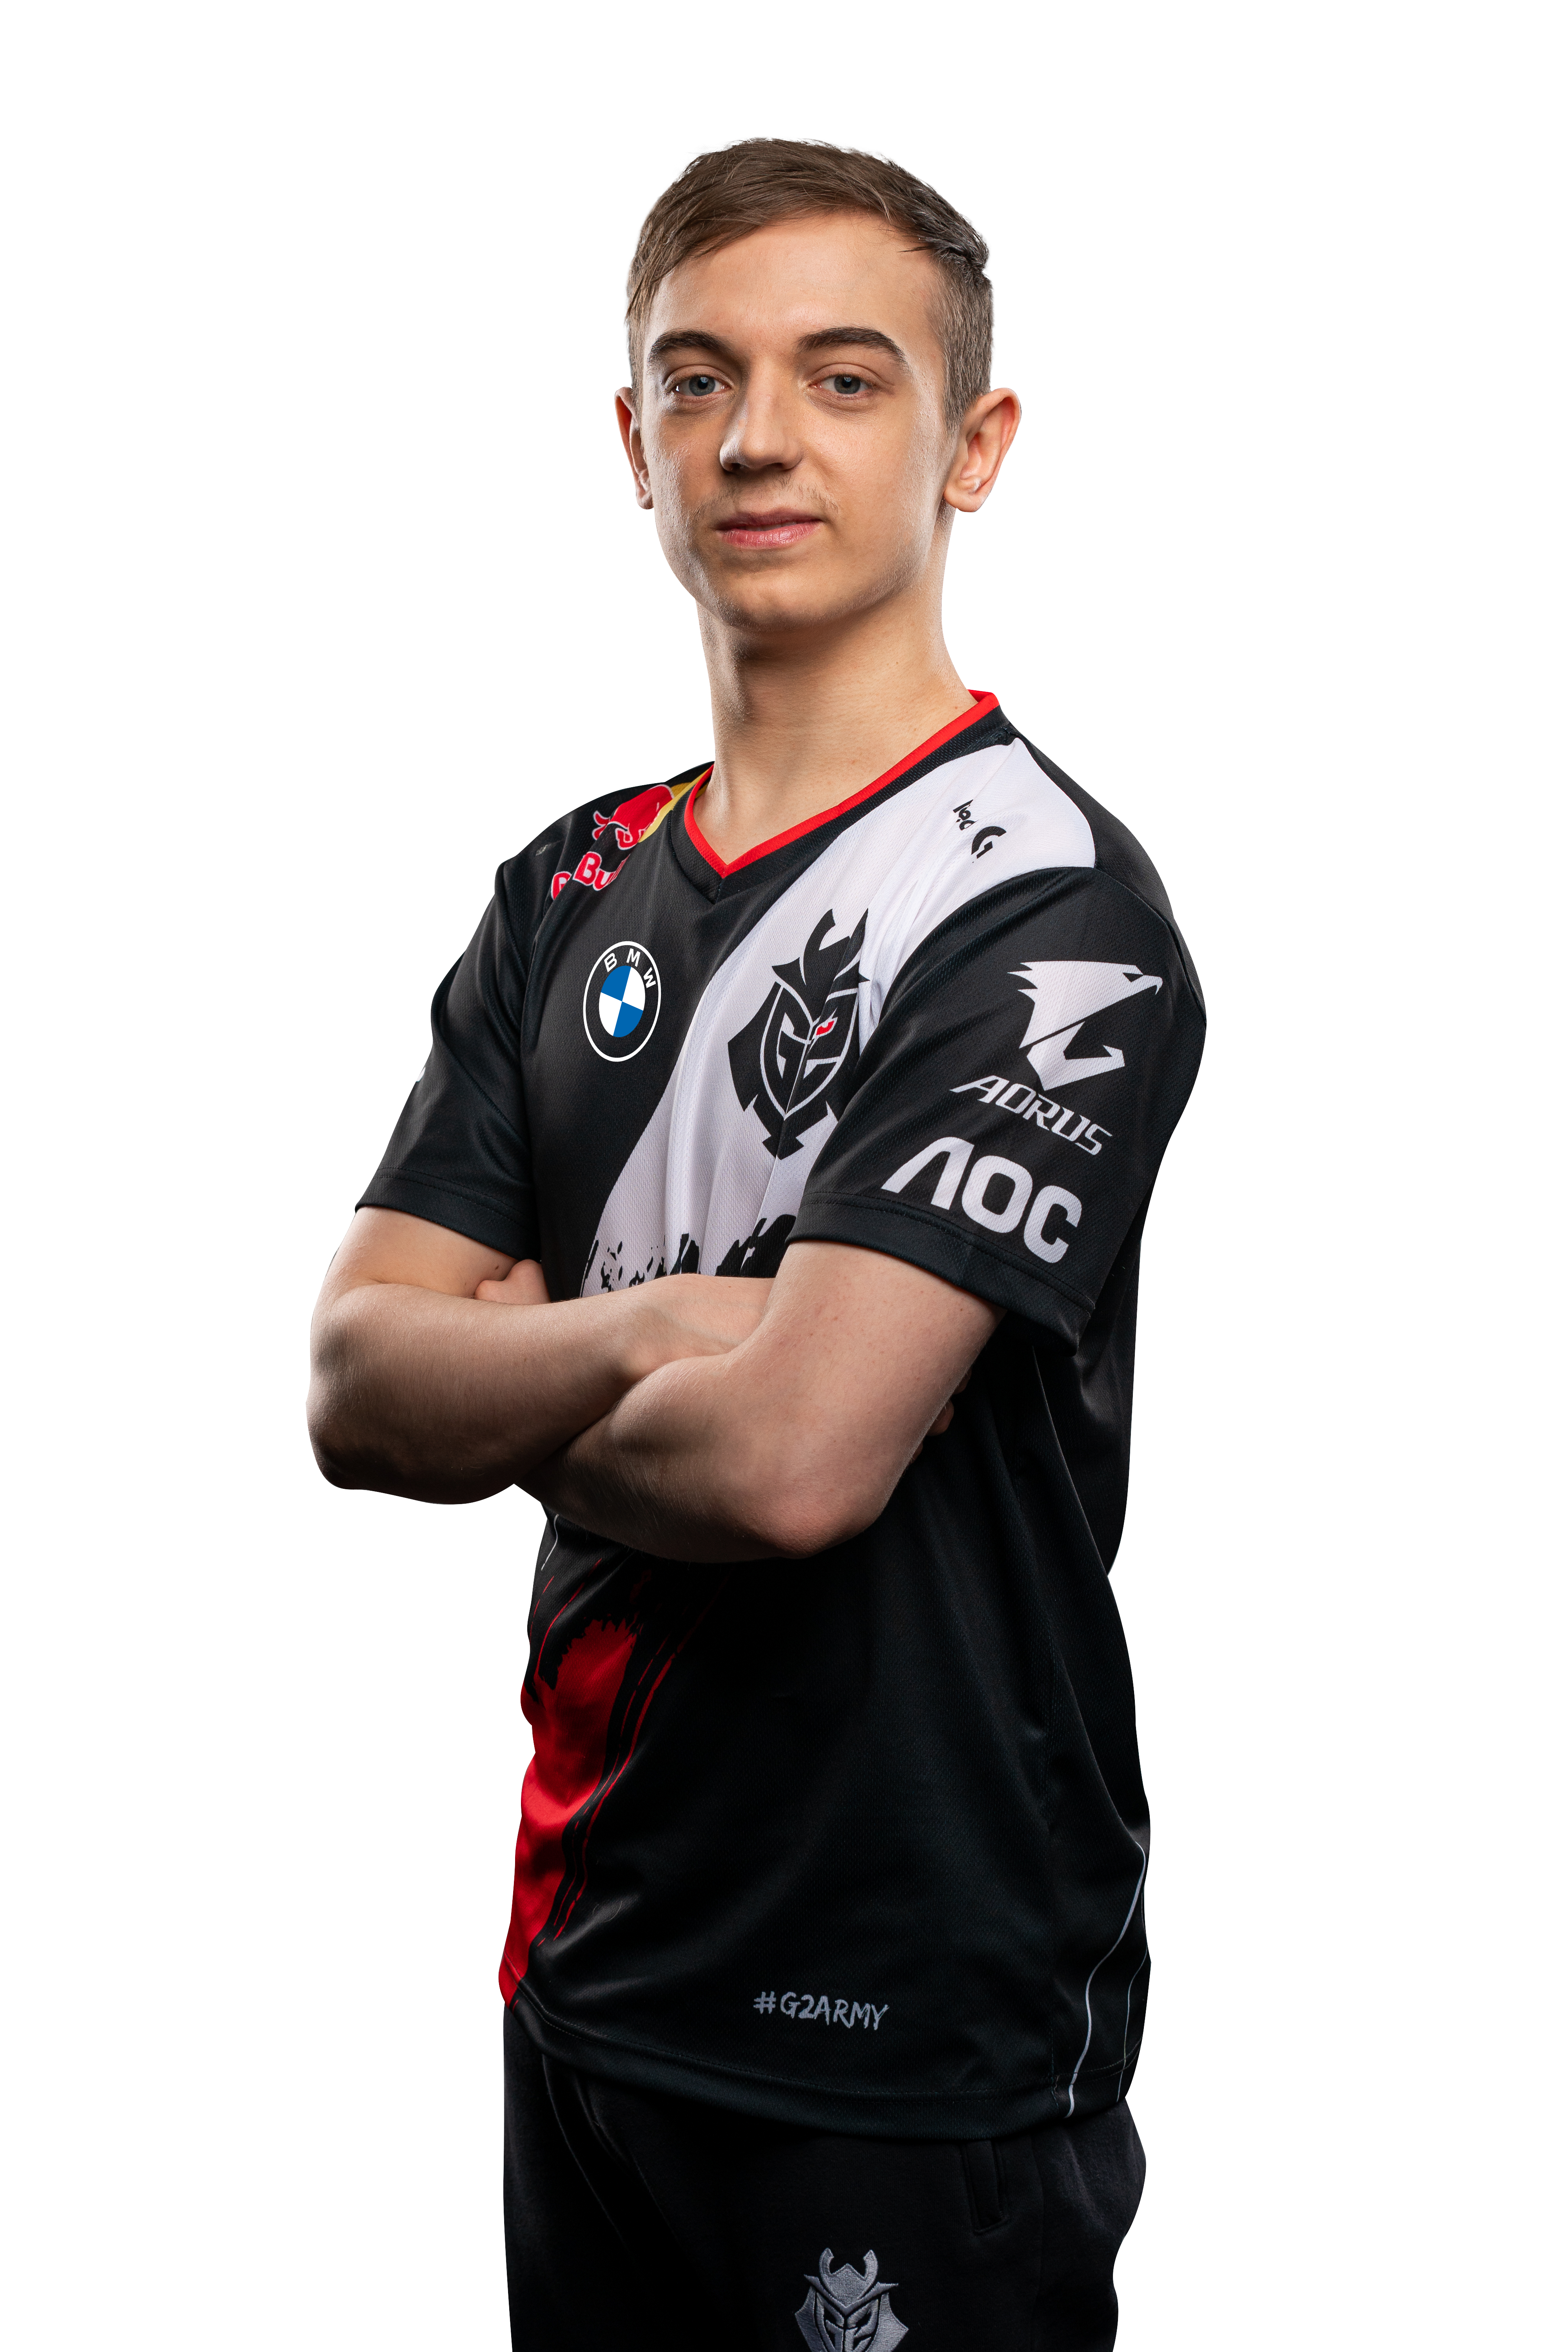 G2 Esports star Caps poses with his arms crossed